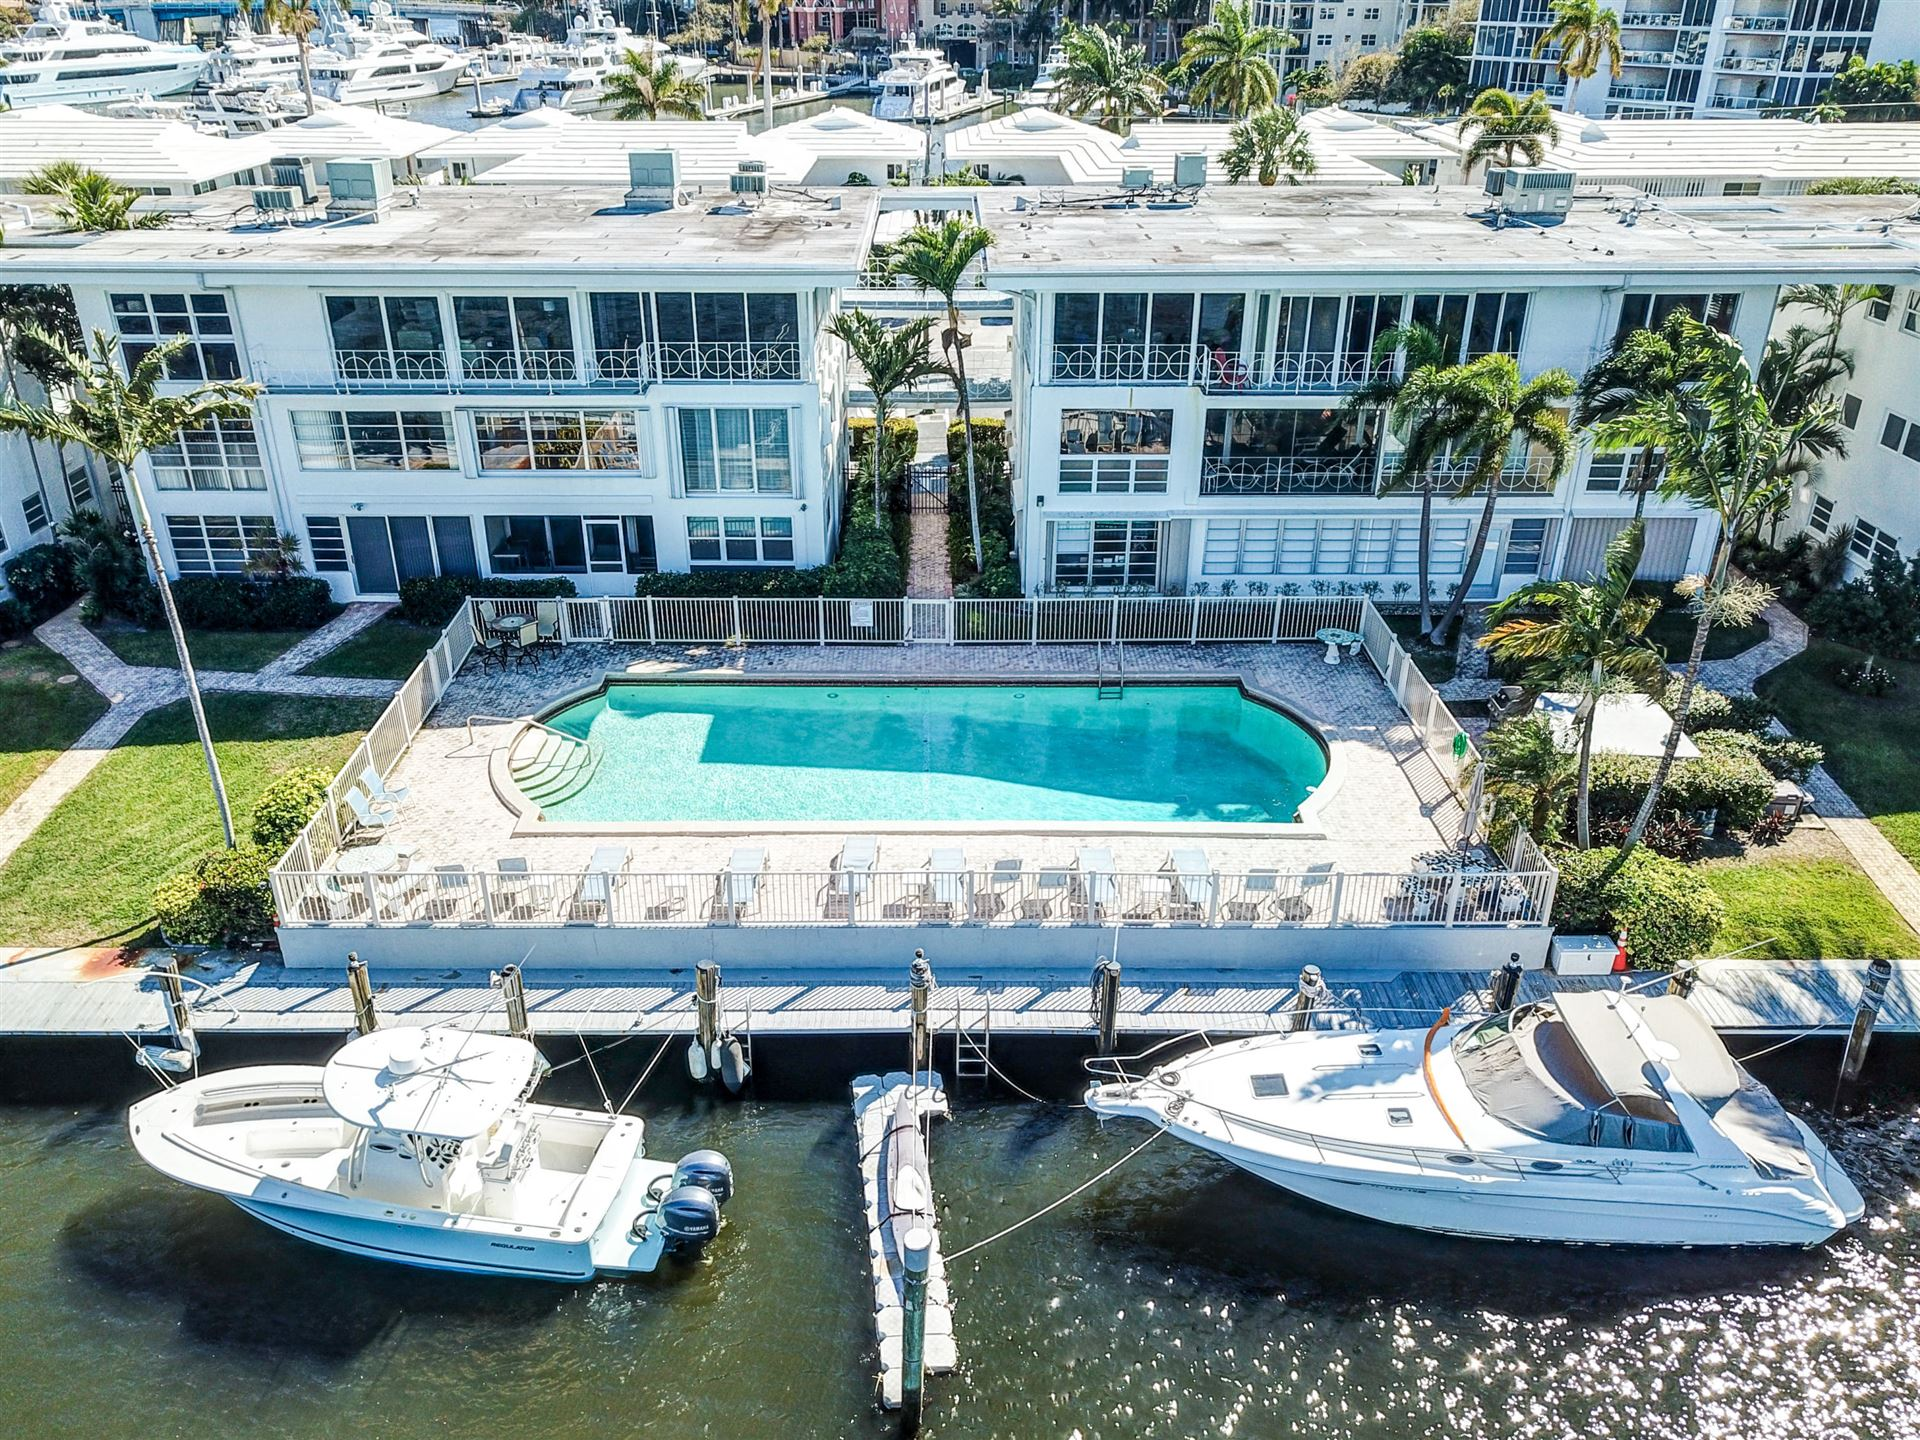 Photo for 2727 Yacht Club Boulevard #3c, Fort Lauderdale, FL 33304 (MLS # RX-10611299)